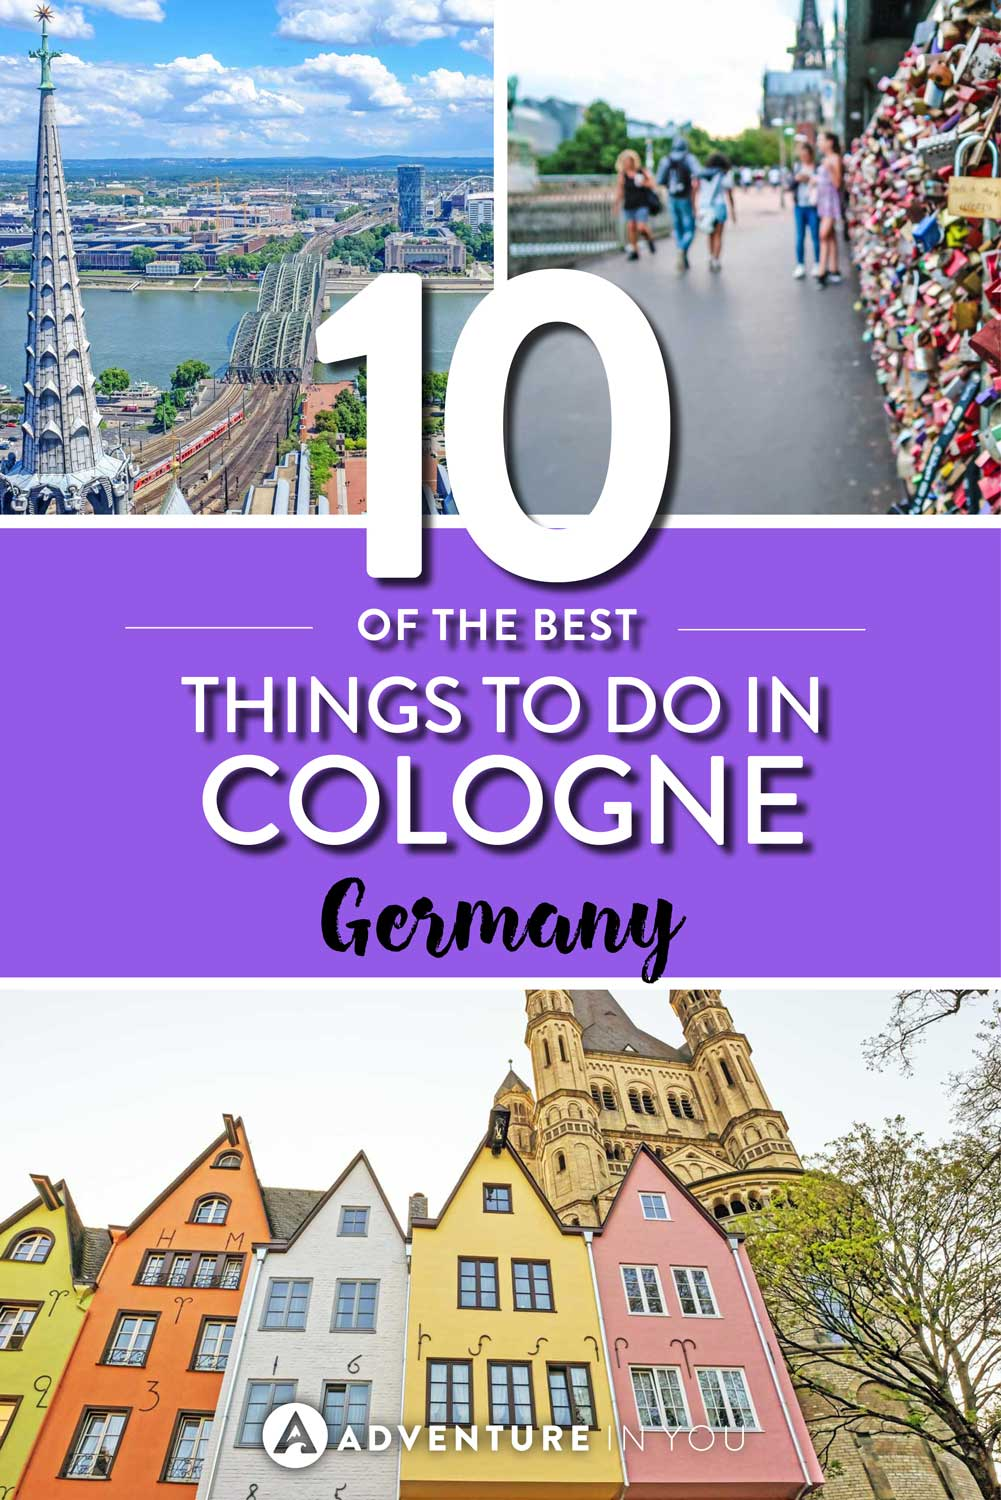 Cologne Germany | Looking to visit Cologne Germany? Check out my guide to seeing the best of this city. From beer breweries, chocolate factories, and popular buildings, Cologne has a lot to offer for tourists looking to explore.